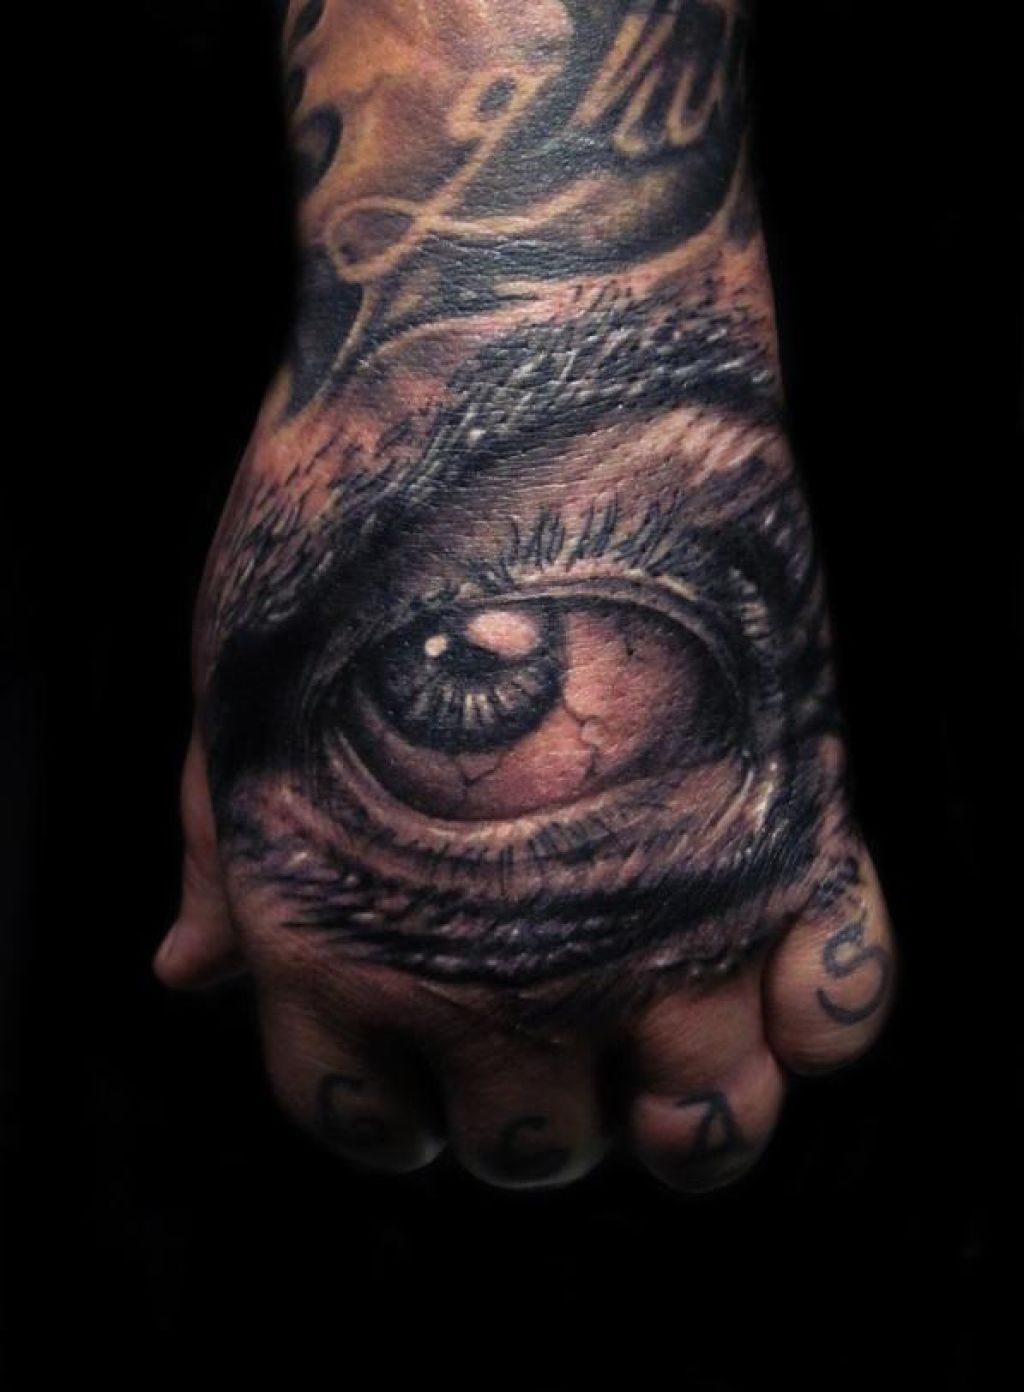 Big Black Eye Hand Tattoo Design Ideas Pictures